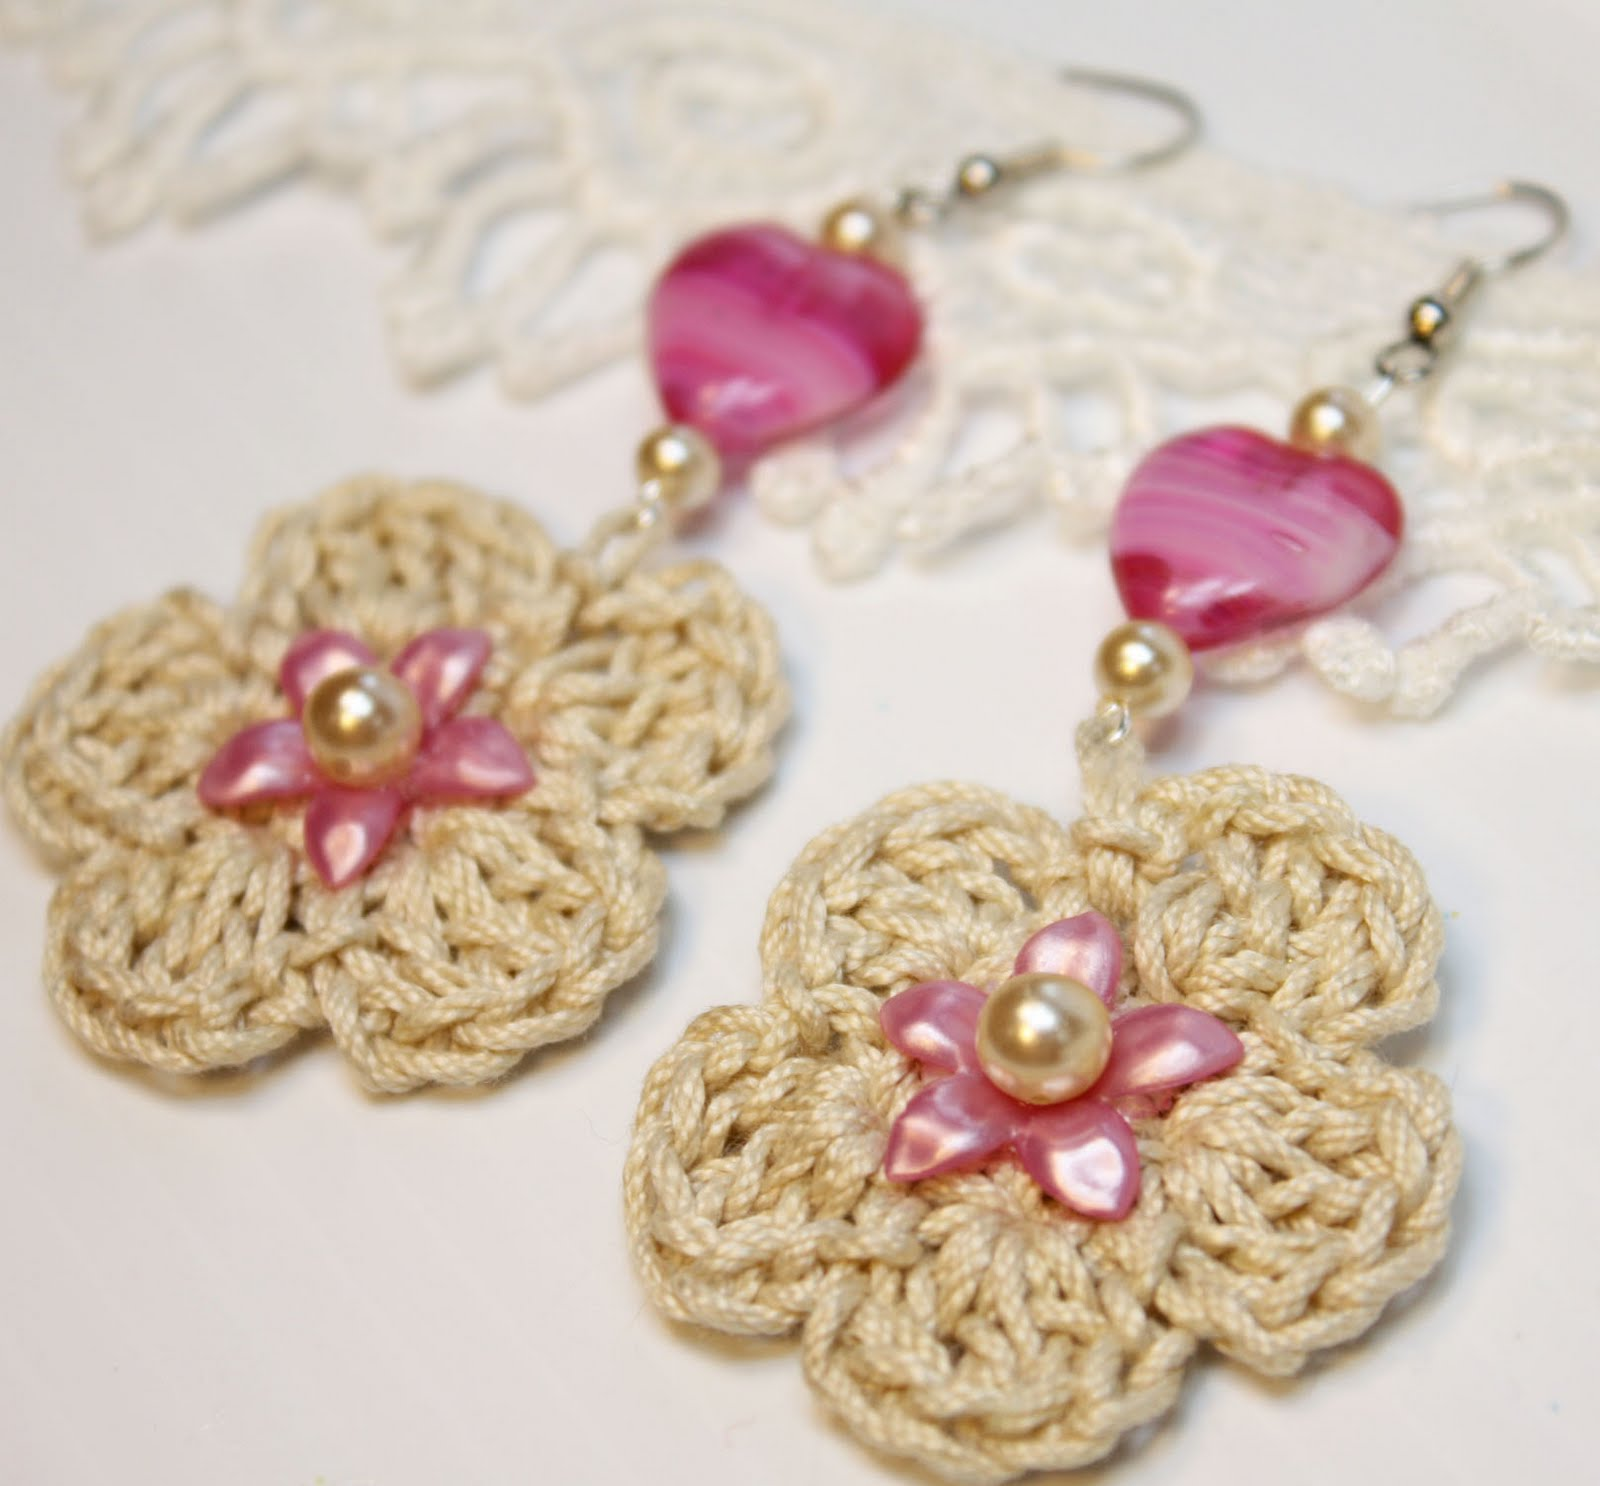 Crochet Earrings : ... earrings today because it s summer i thought crochet earrings has a